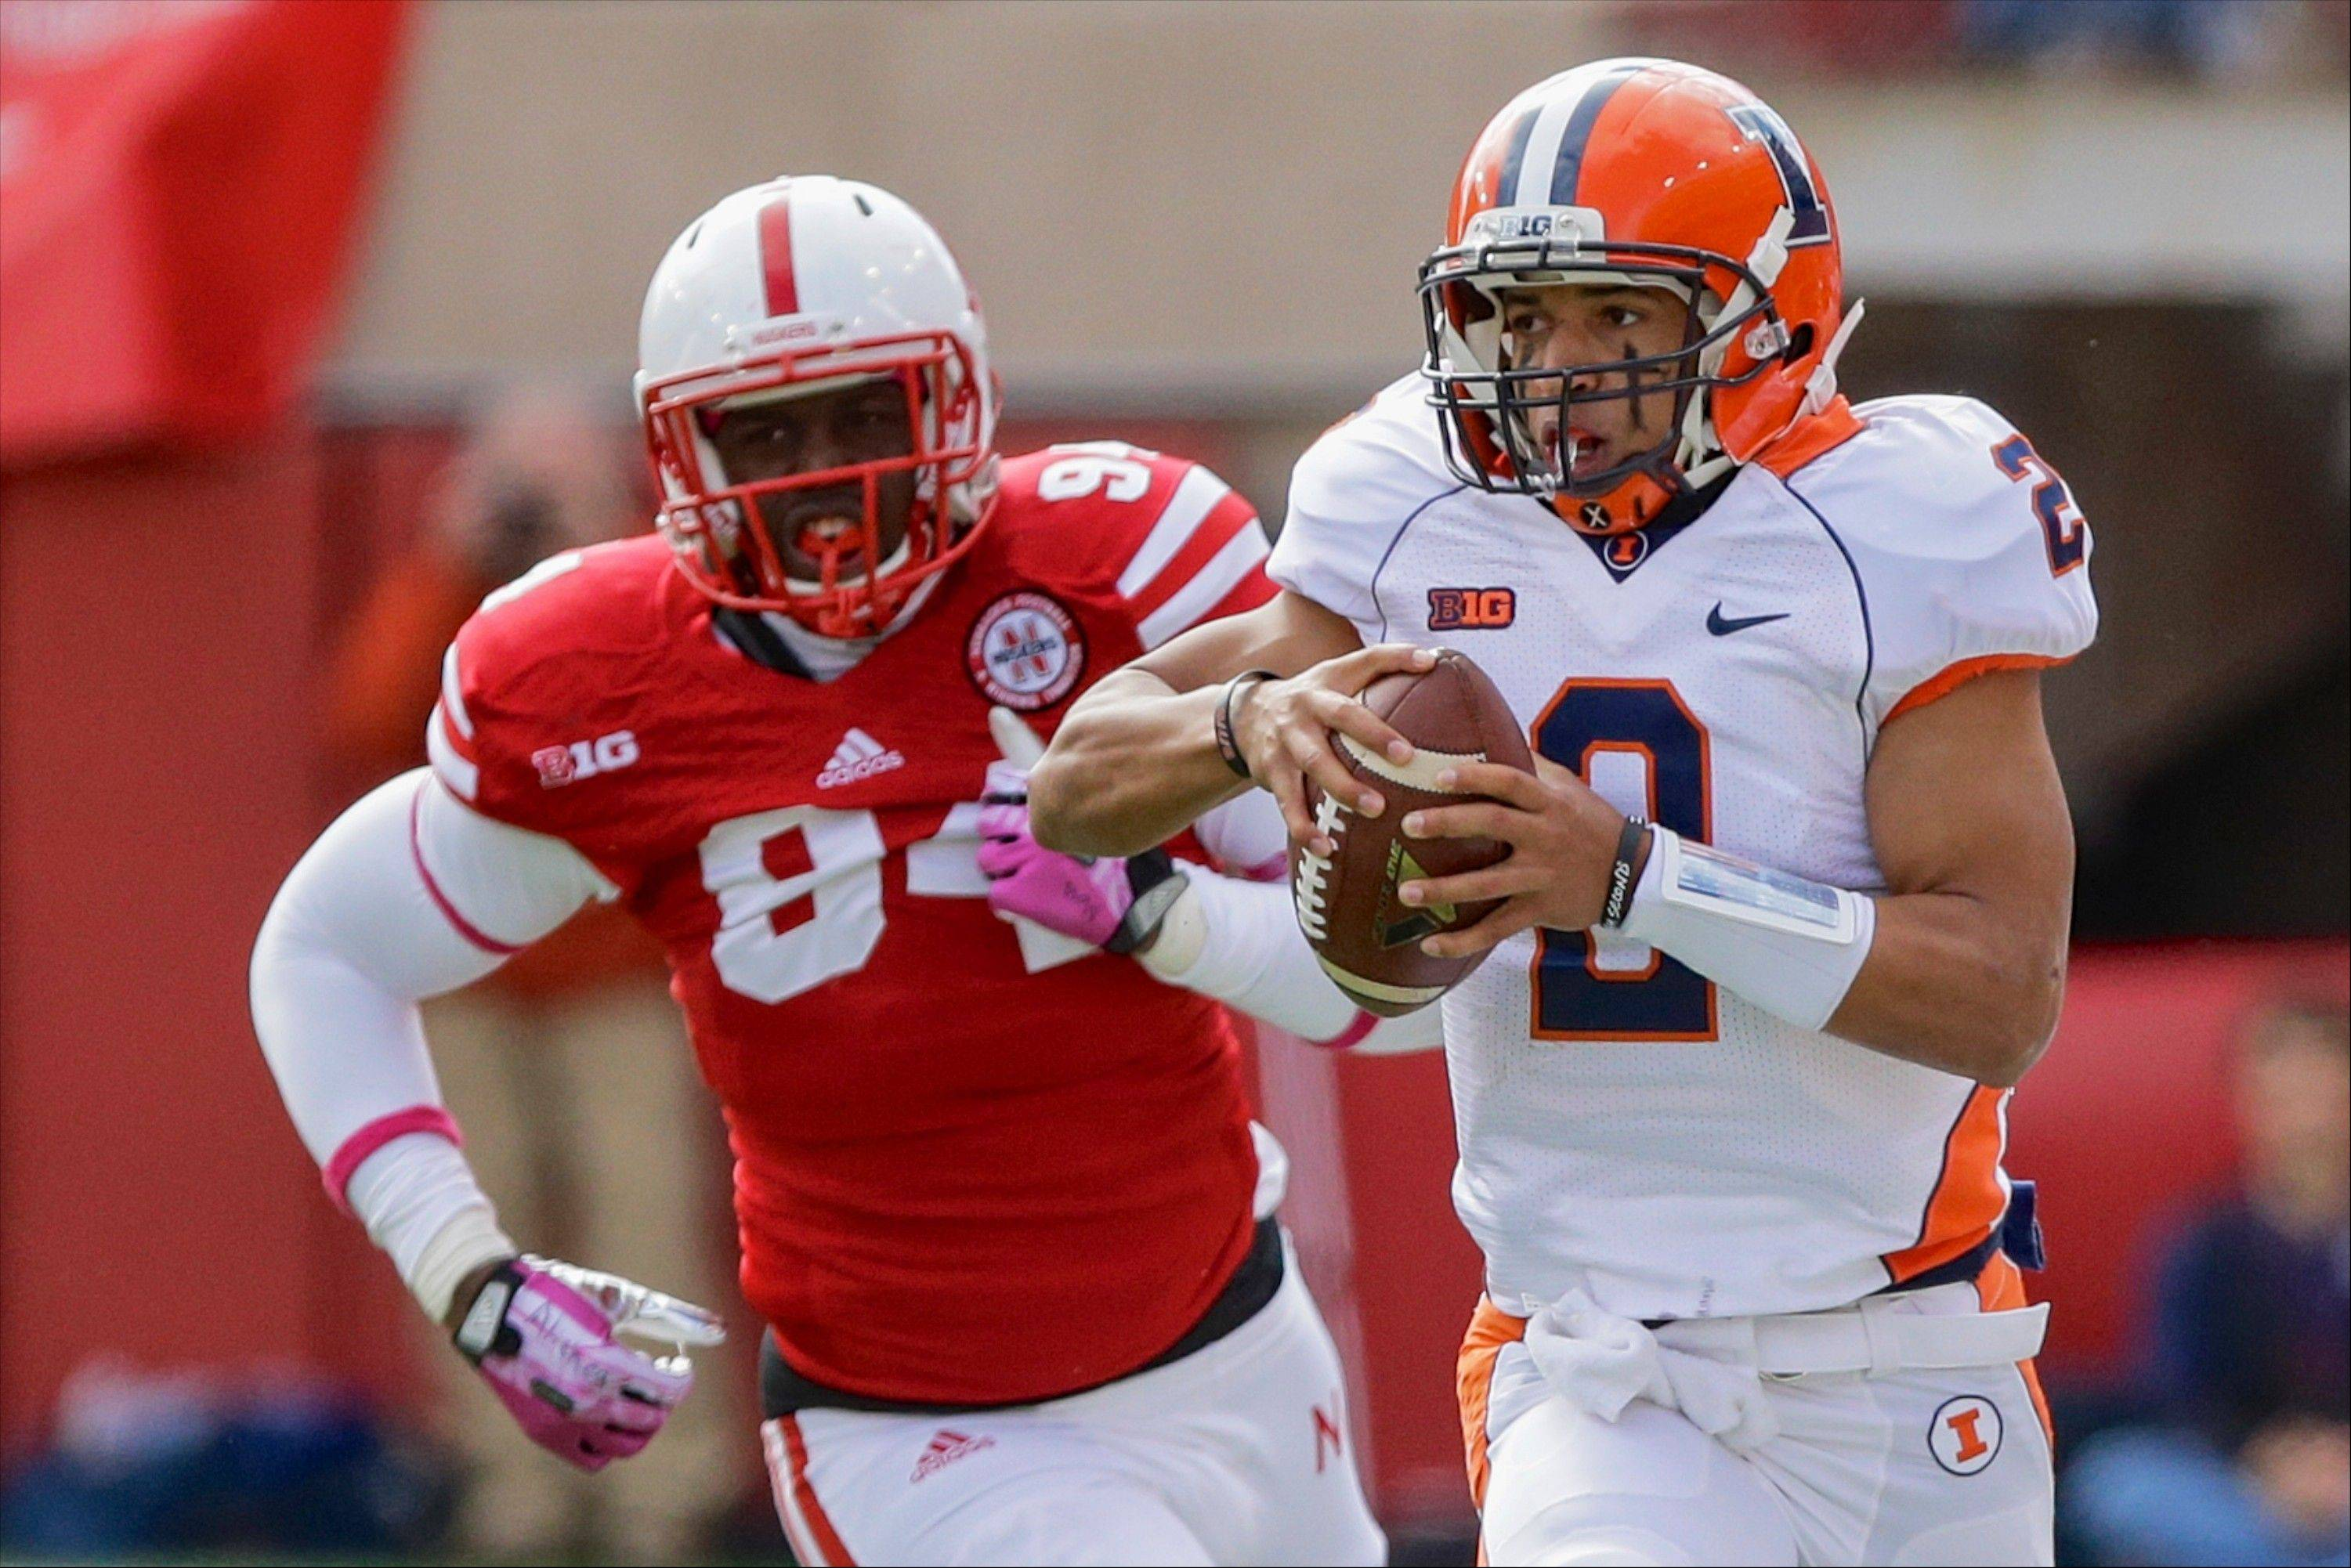 Illinois quarterback Nathan Scheelhaase (2) is pursued by Nebraska defensive end Avery Moss (94) in the first half in Lincoln, Neb., Saturday.